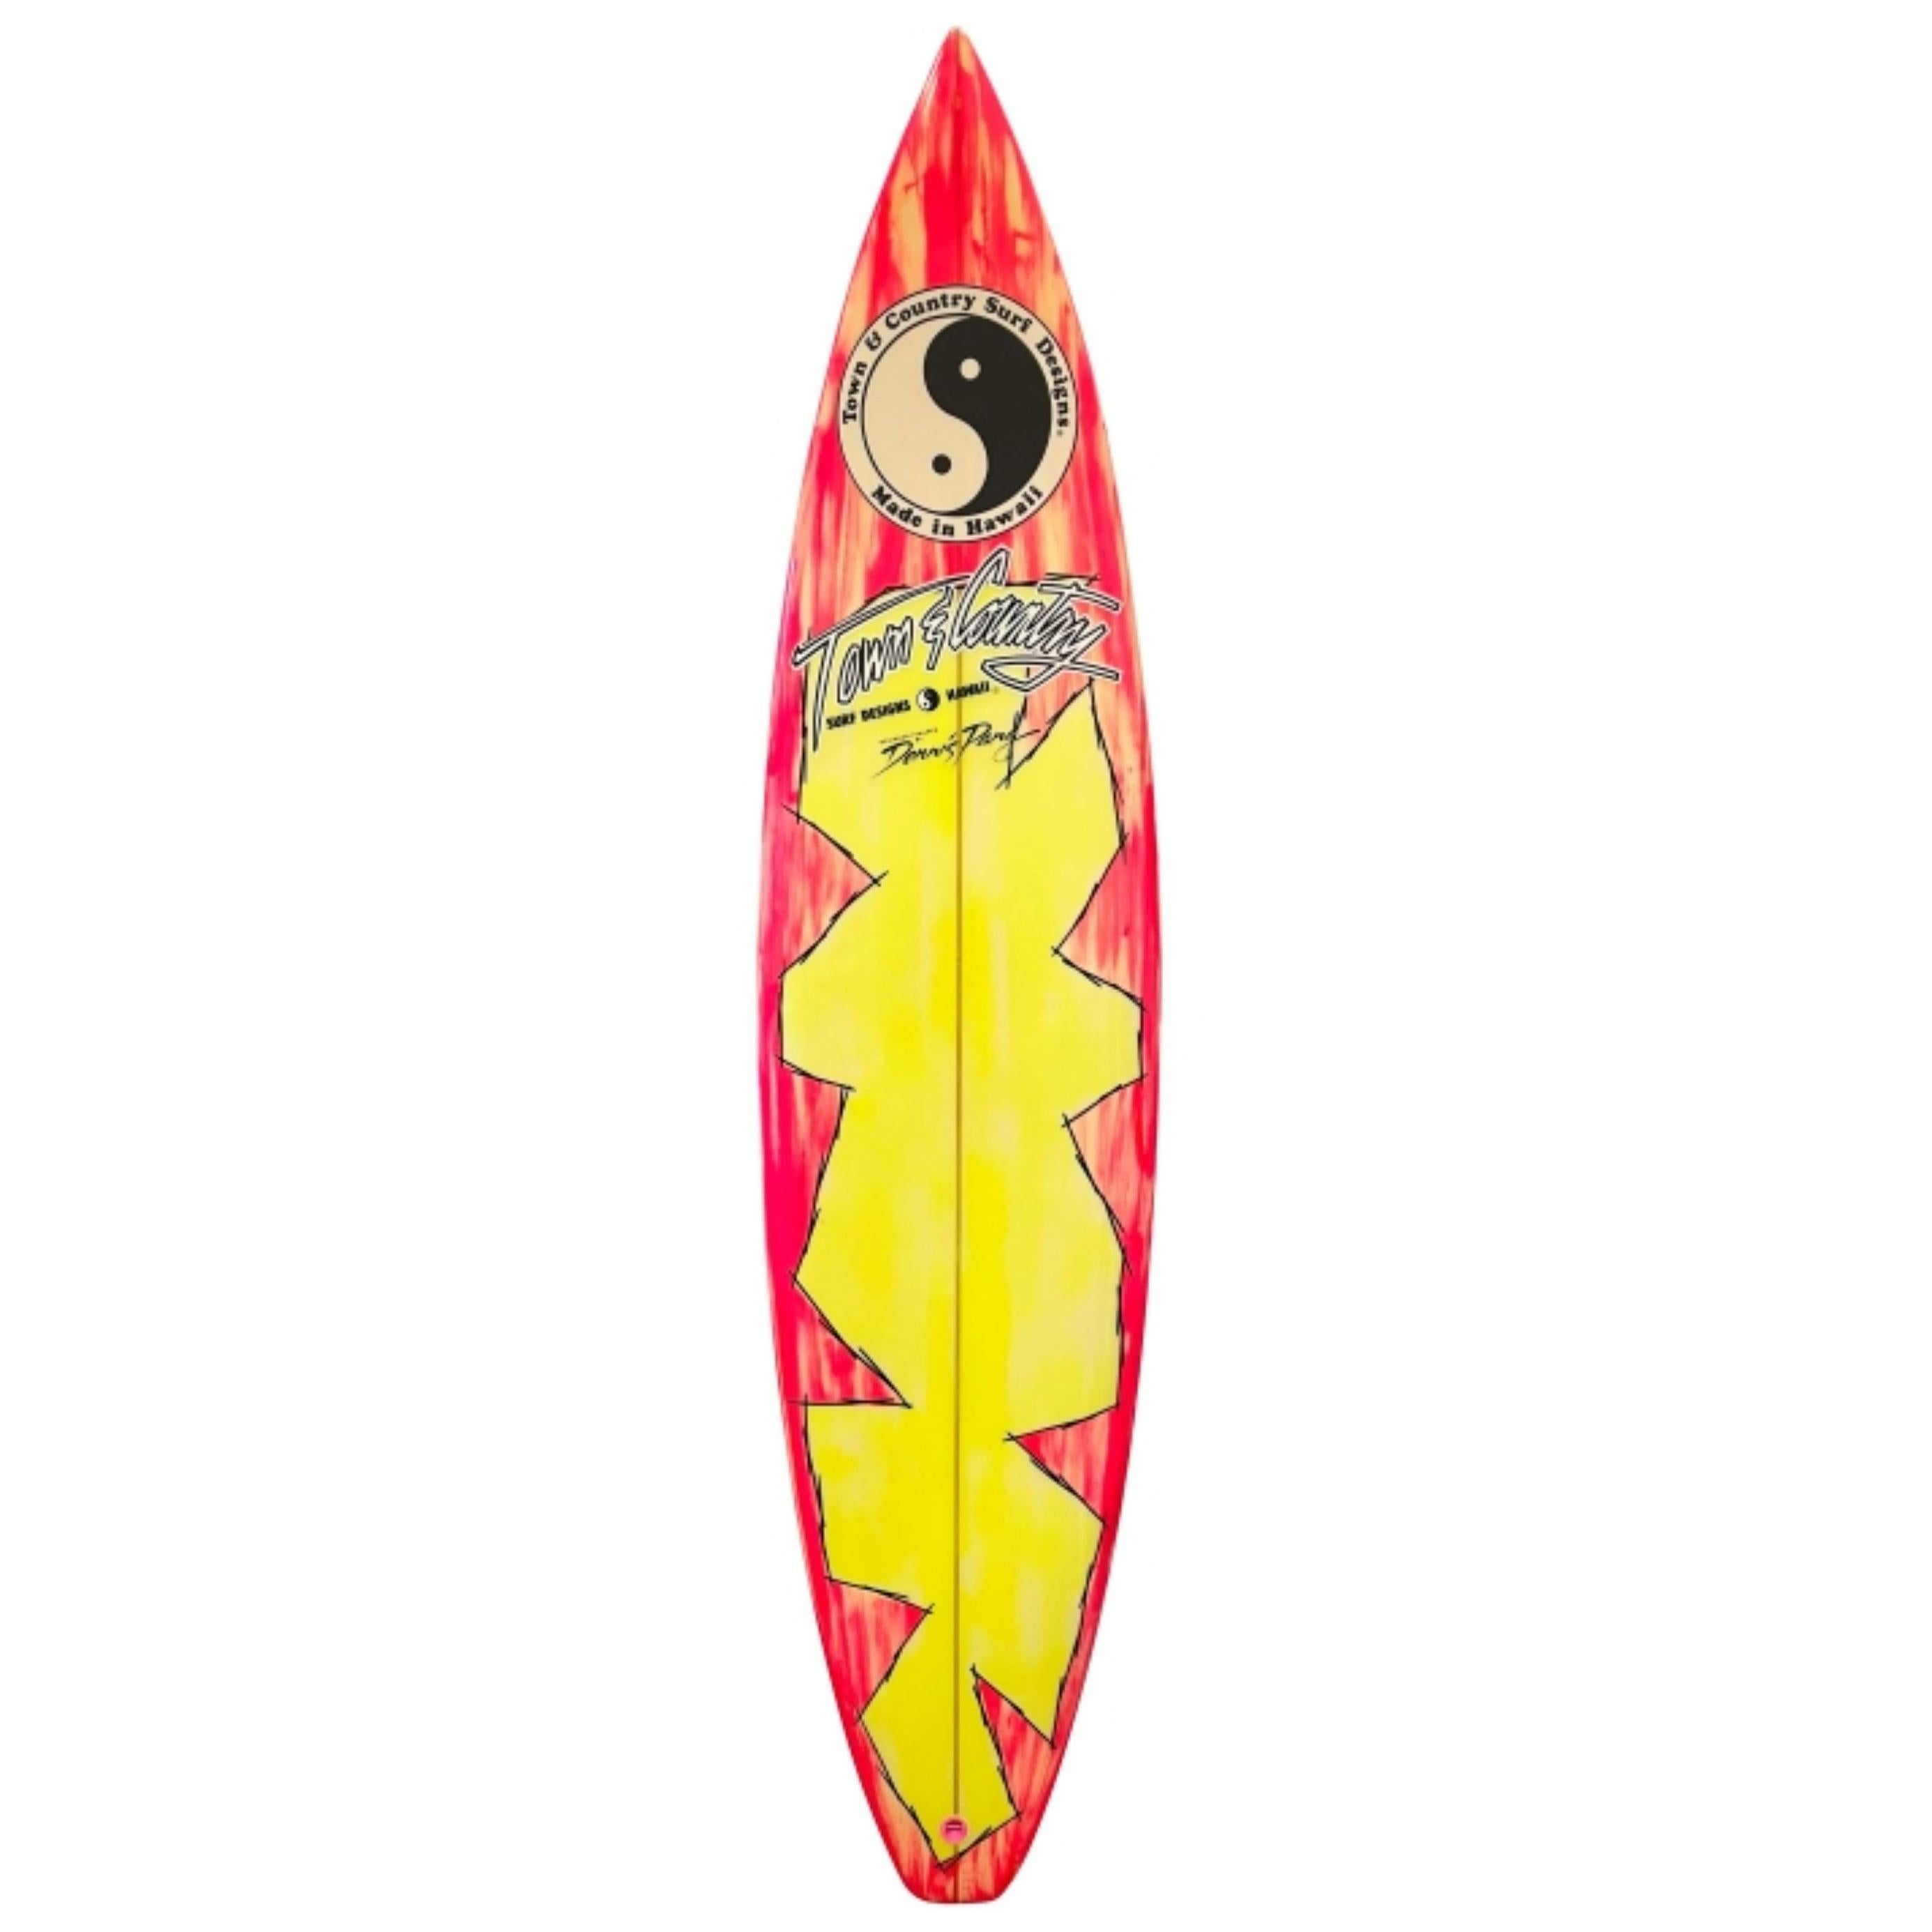 1980s Vintage Town & Country Surfboard Shaped by Dennis Pang